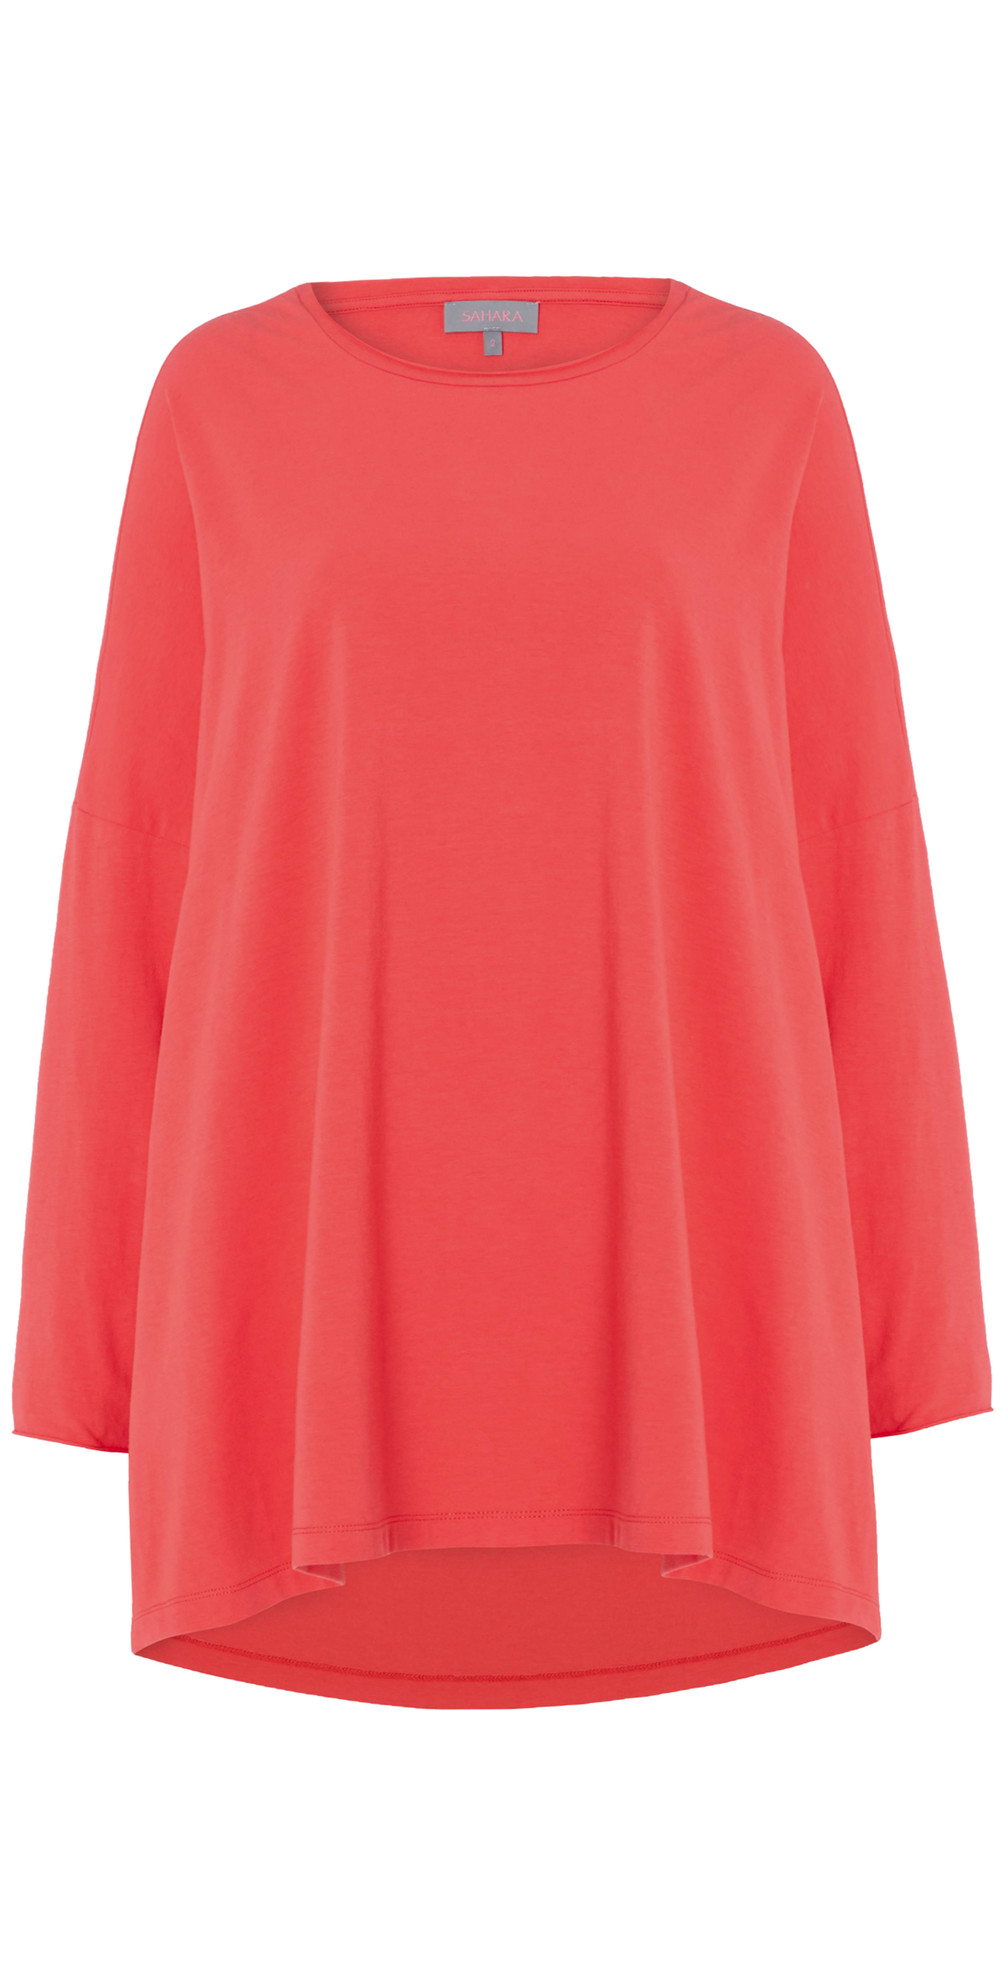 Cotton Jersey Oversized Top main image